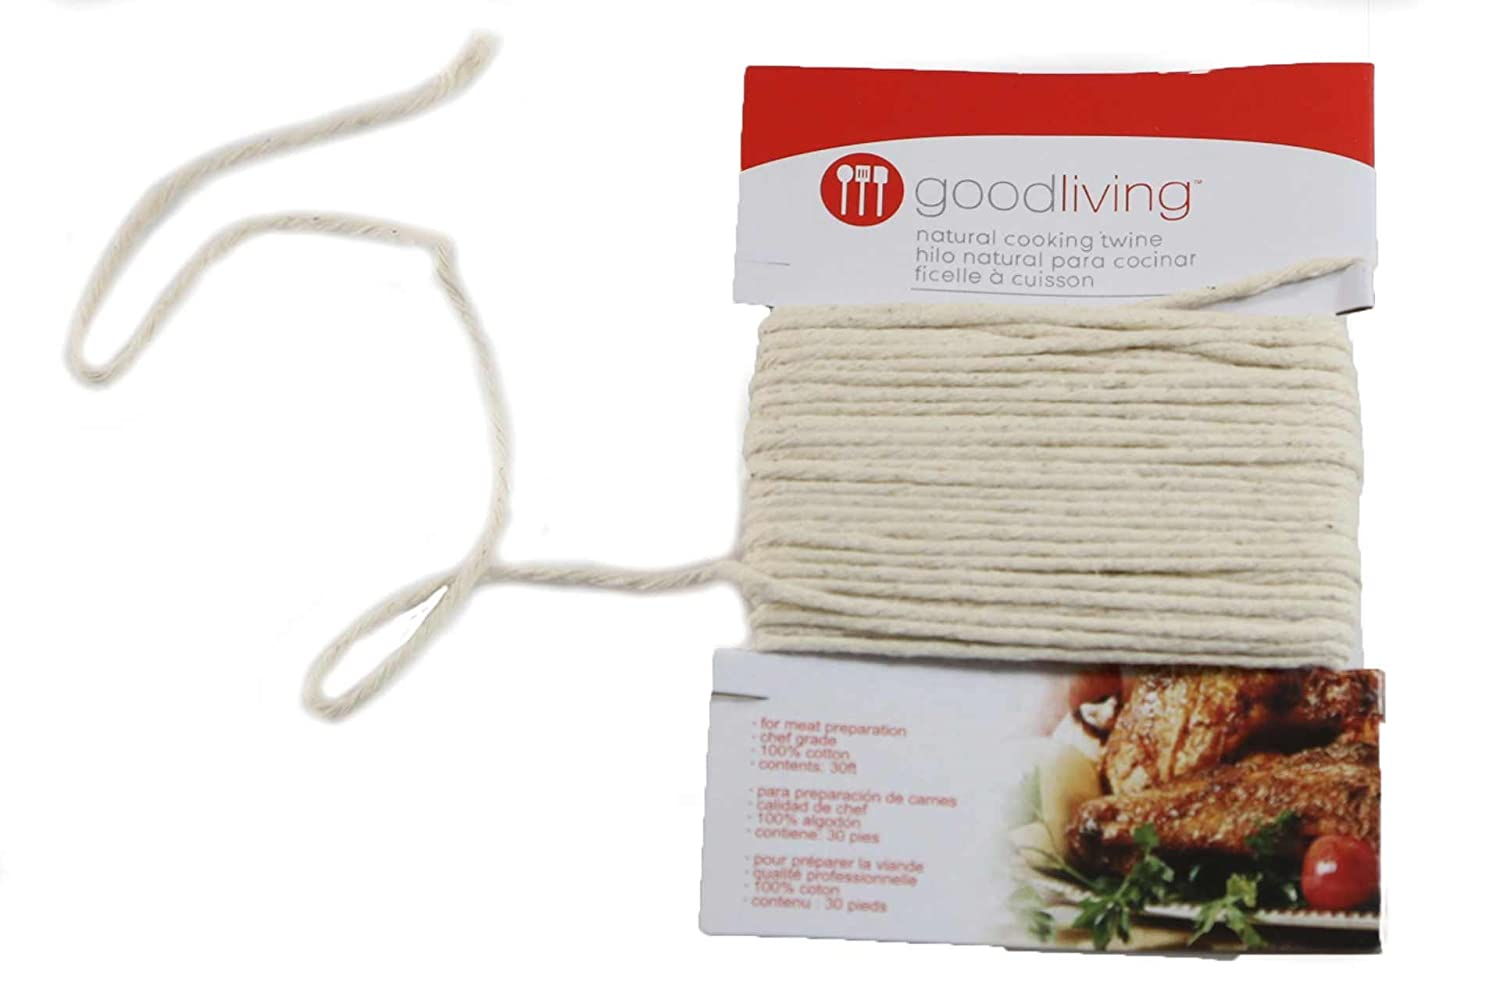 Good Living 100% Natural Cotton Oven-Safe Cooking Twine, 3-pack